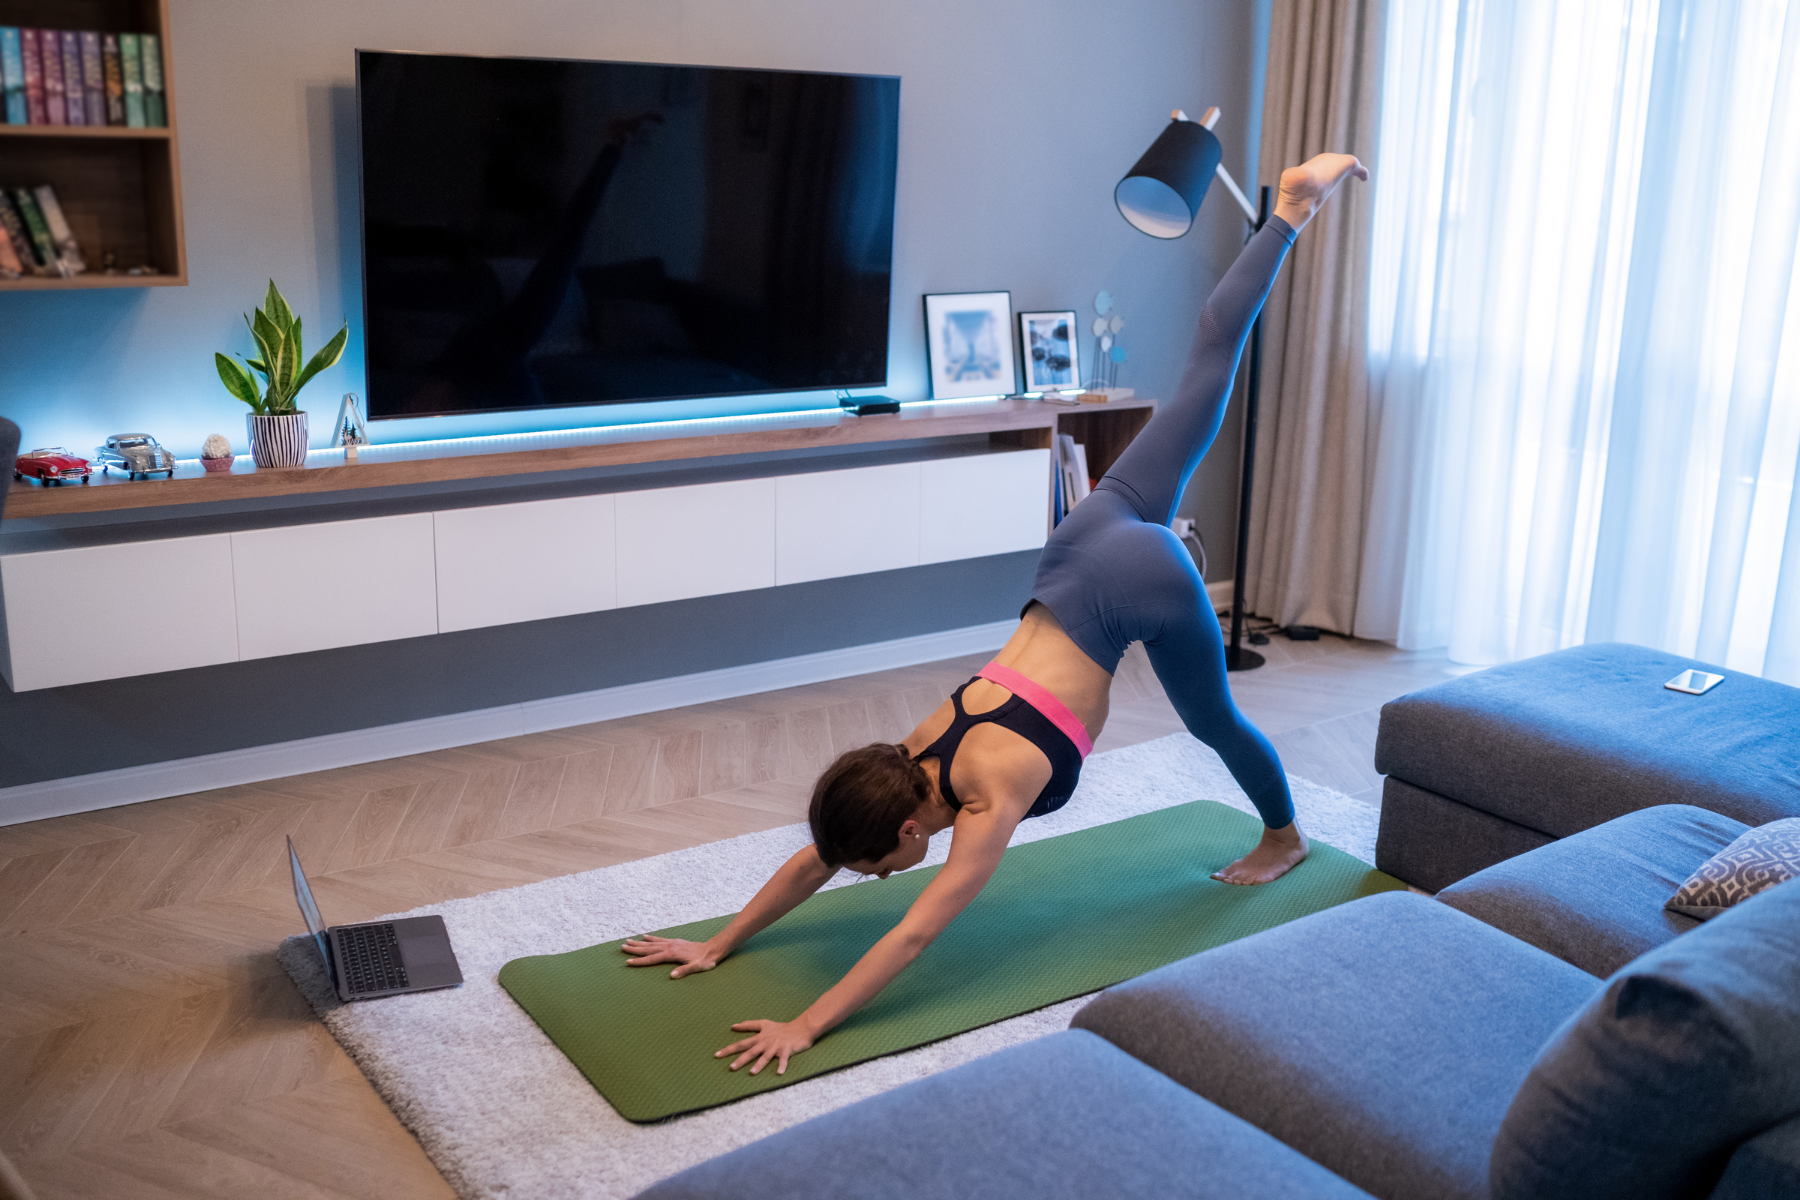 7 Fitness Youtubers To Watch For Quick At Home Workouts